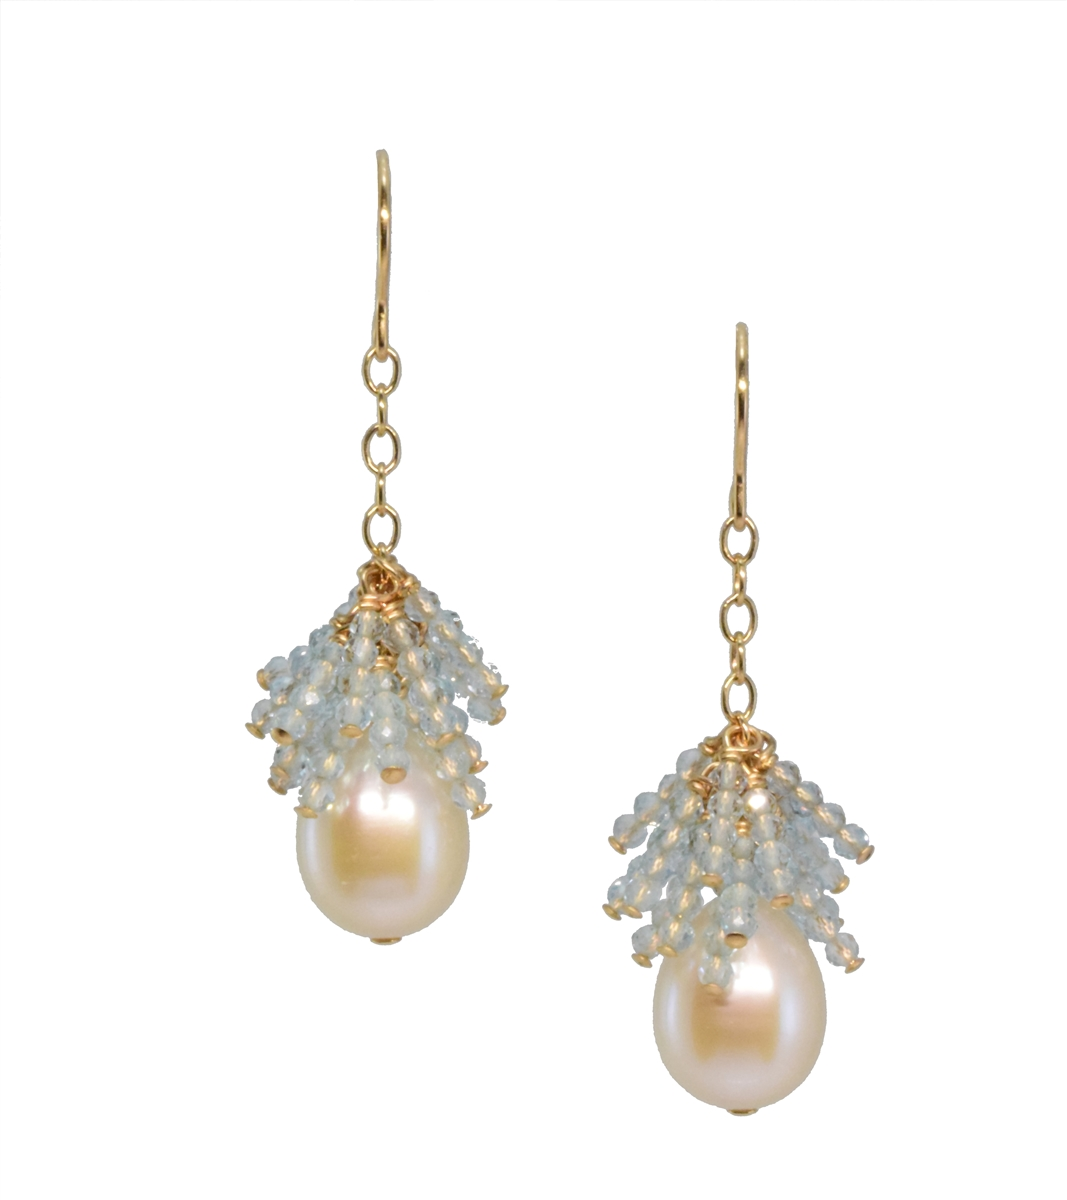 STERLING SILVER DANGLE EARRINGS WITH PEARLS AND  AQUAMARINE /& PERIDOT STONES